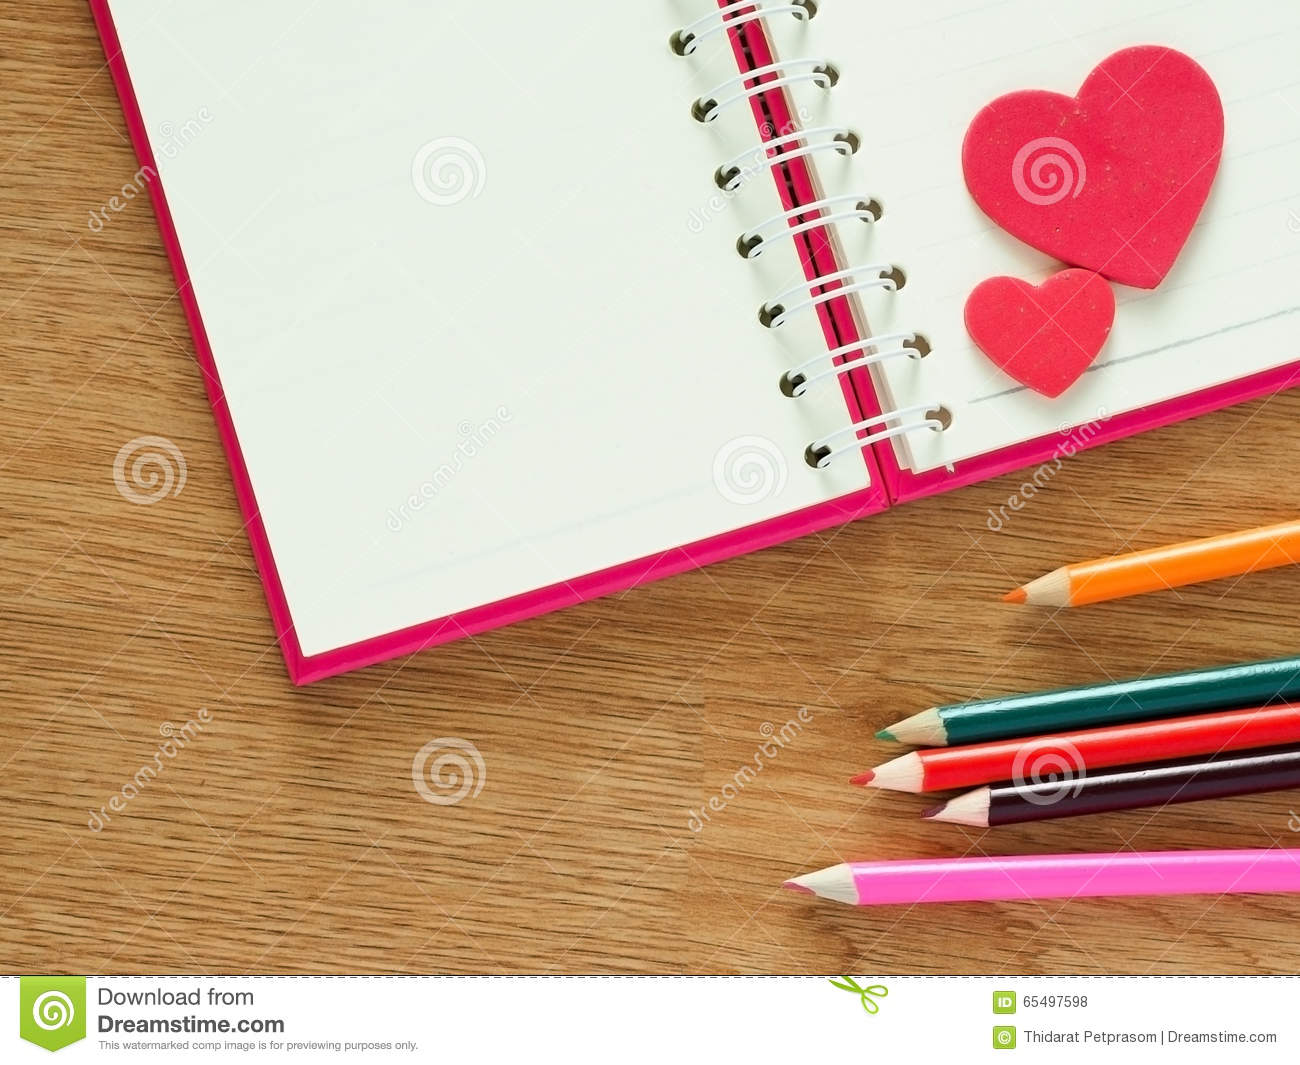 Book about color red - Valentines Day Background With Red Hearts Book For Diary And Color Pencils On Wood Floor